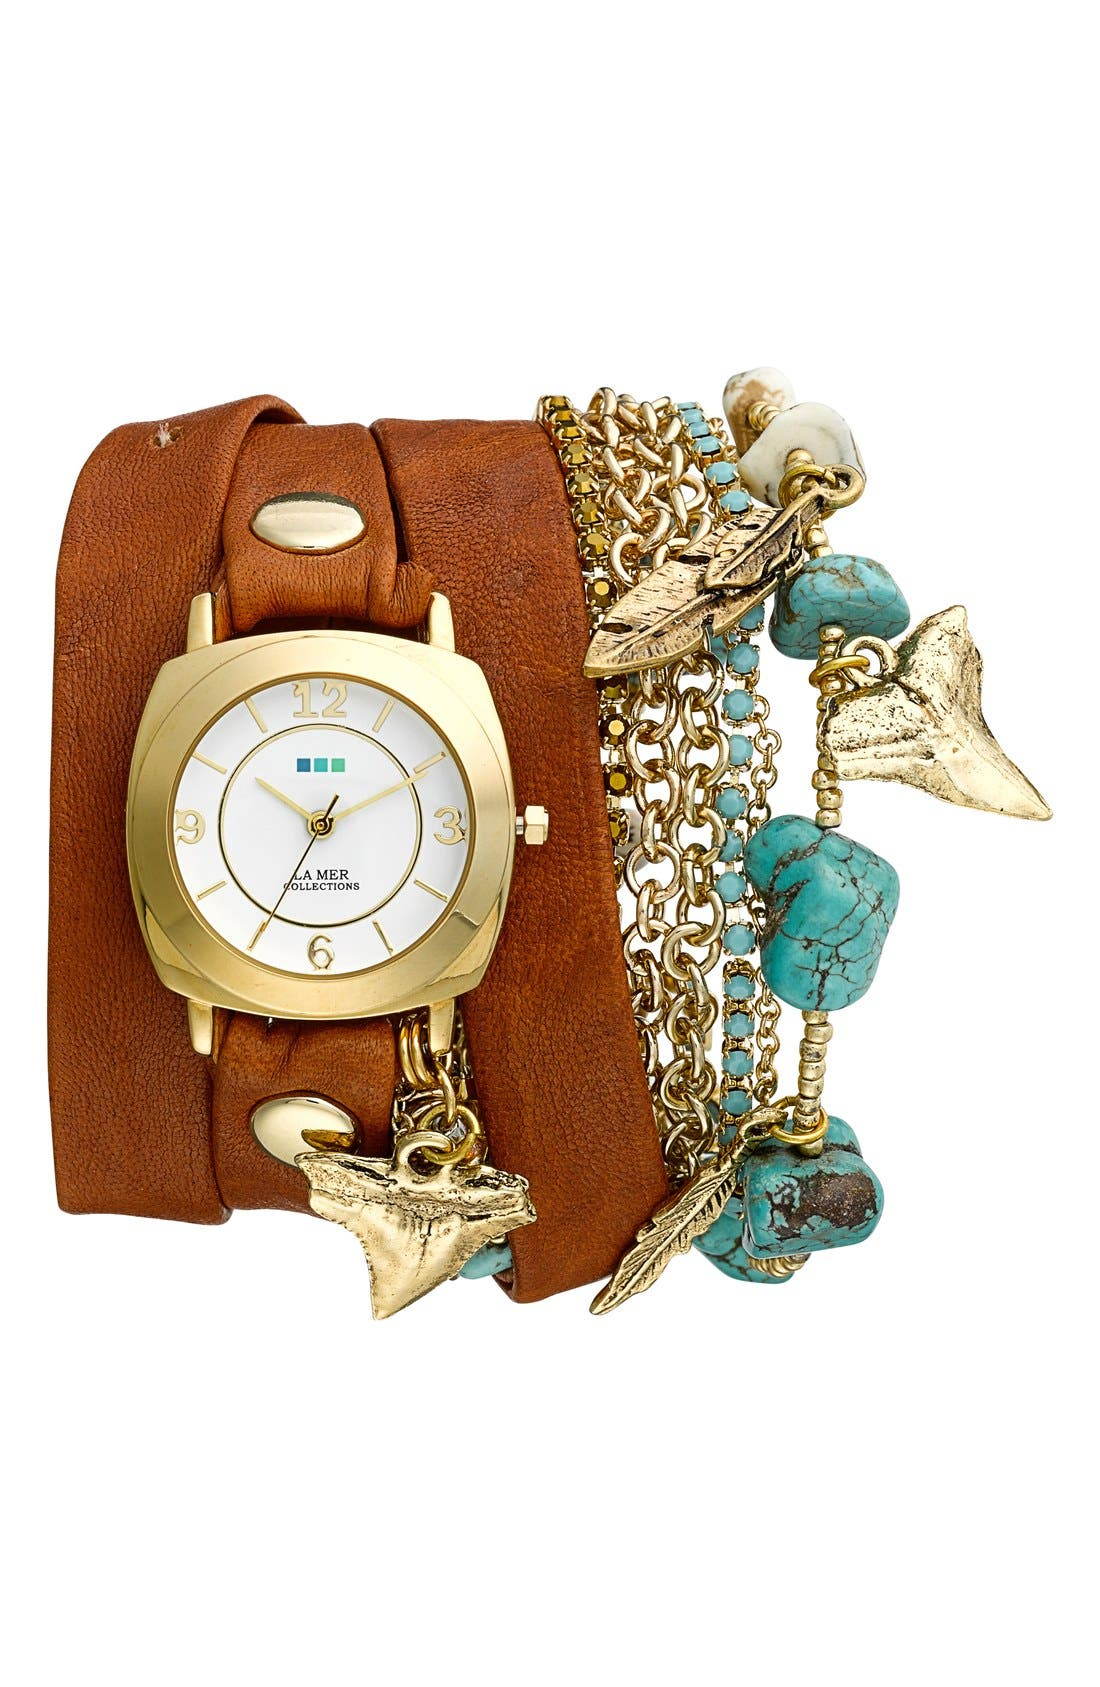 Main Image - La Mer Collections Leather & Chain Wrap Bracelet Watch, 35mm x 33mm